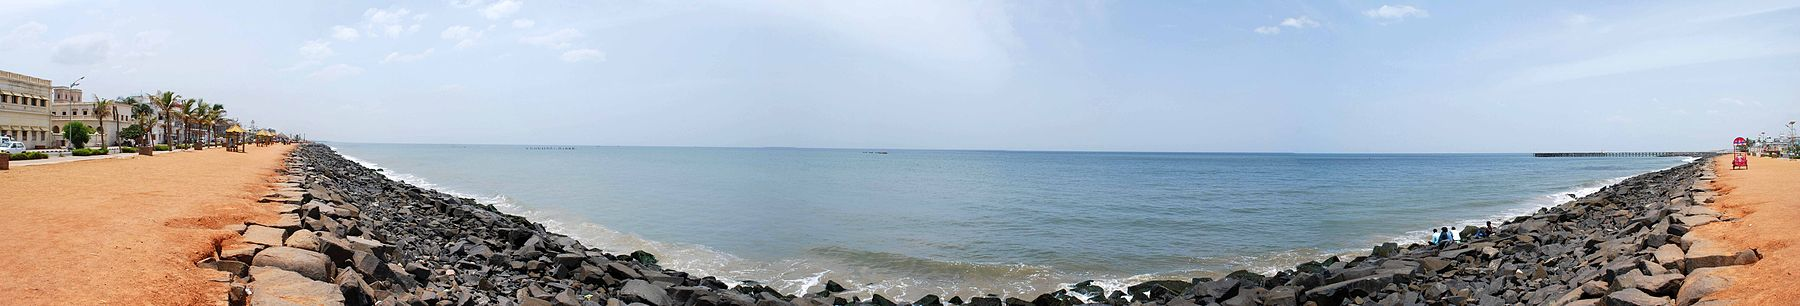 Panorama view of Pondicherry beach